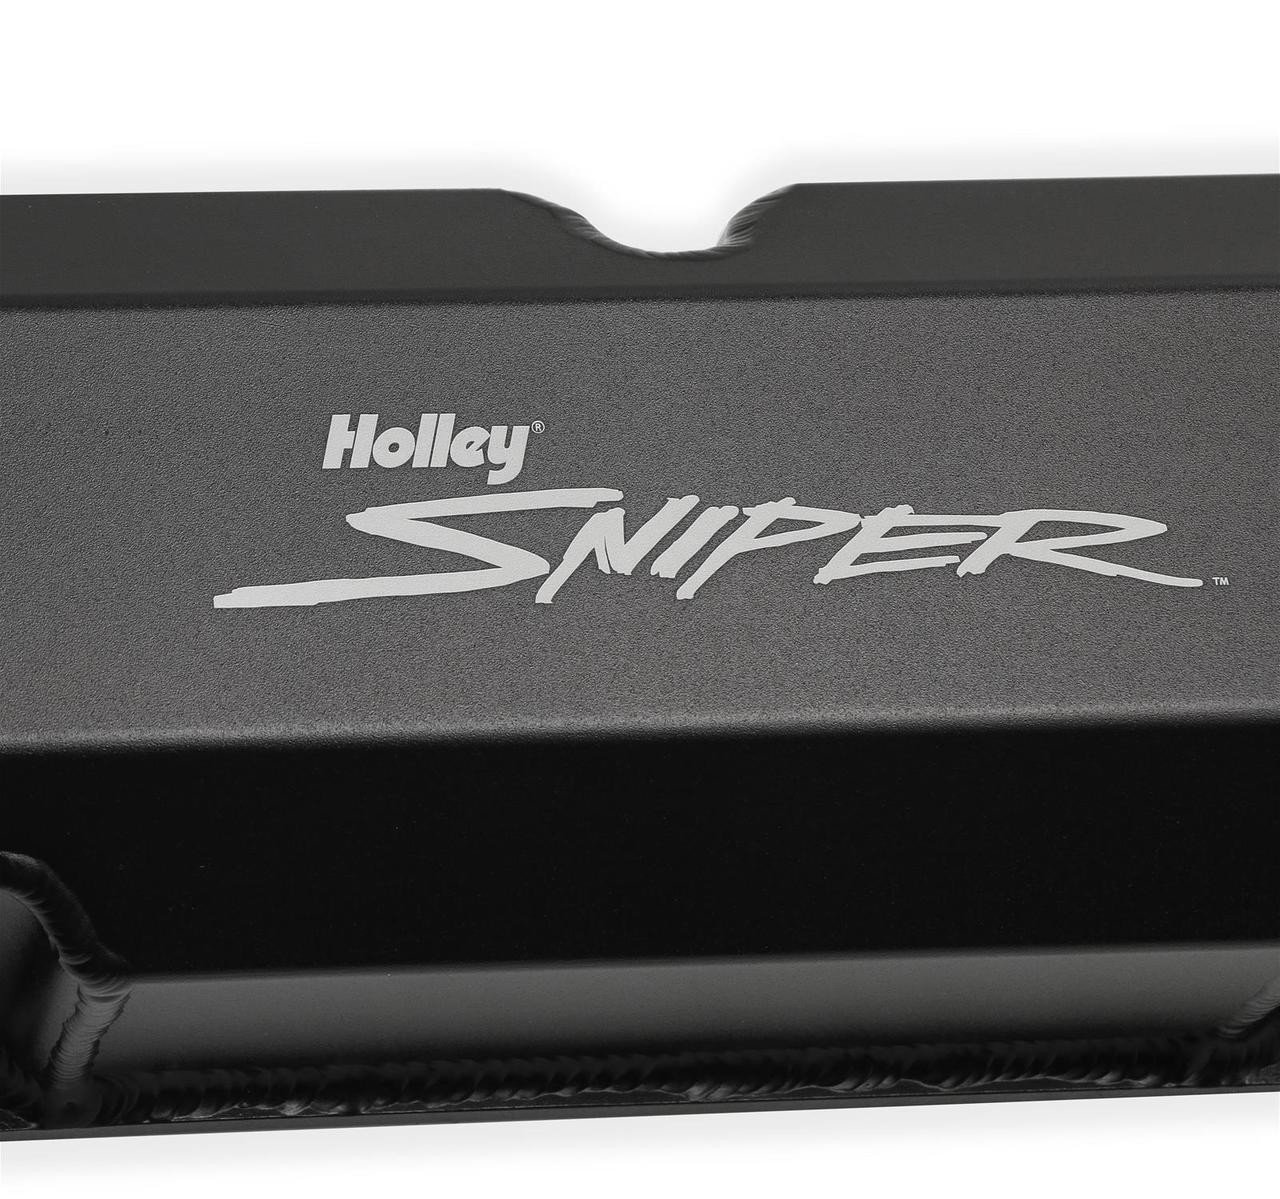 Holley Sniper Fabricated Aluminum Valve Covers 890001B